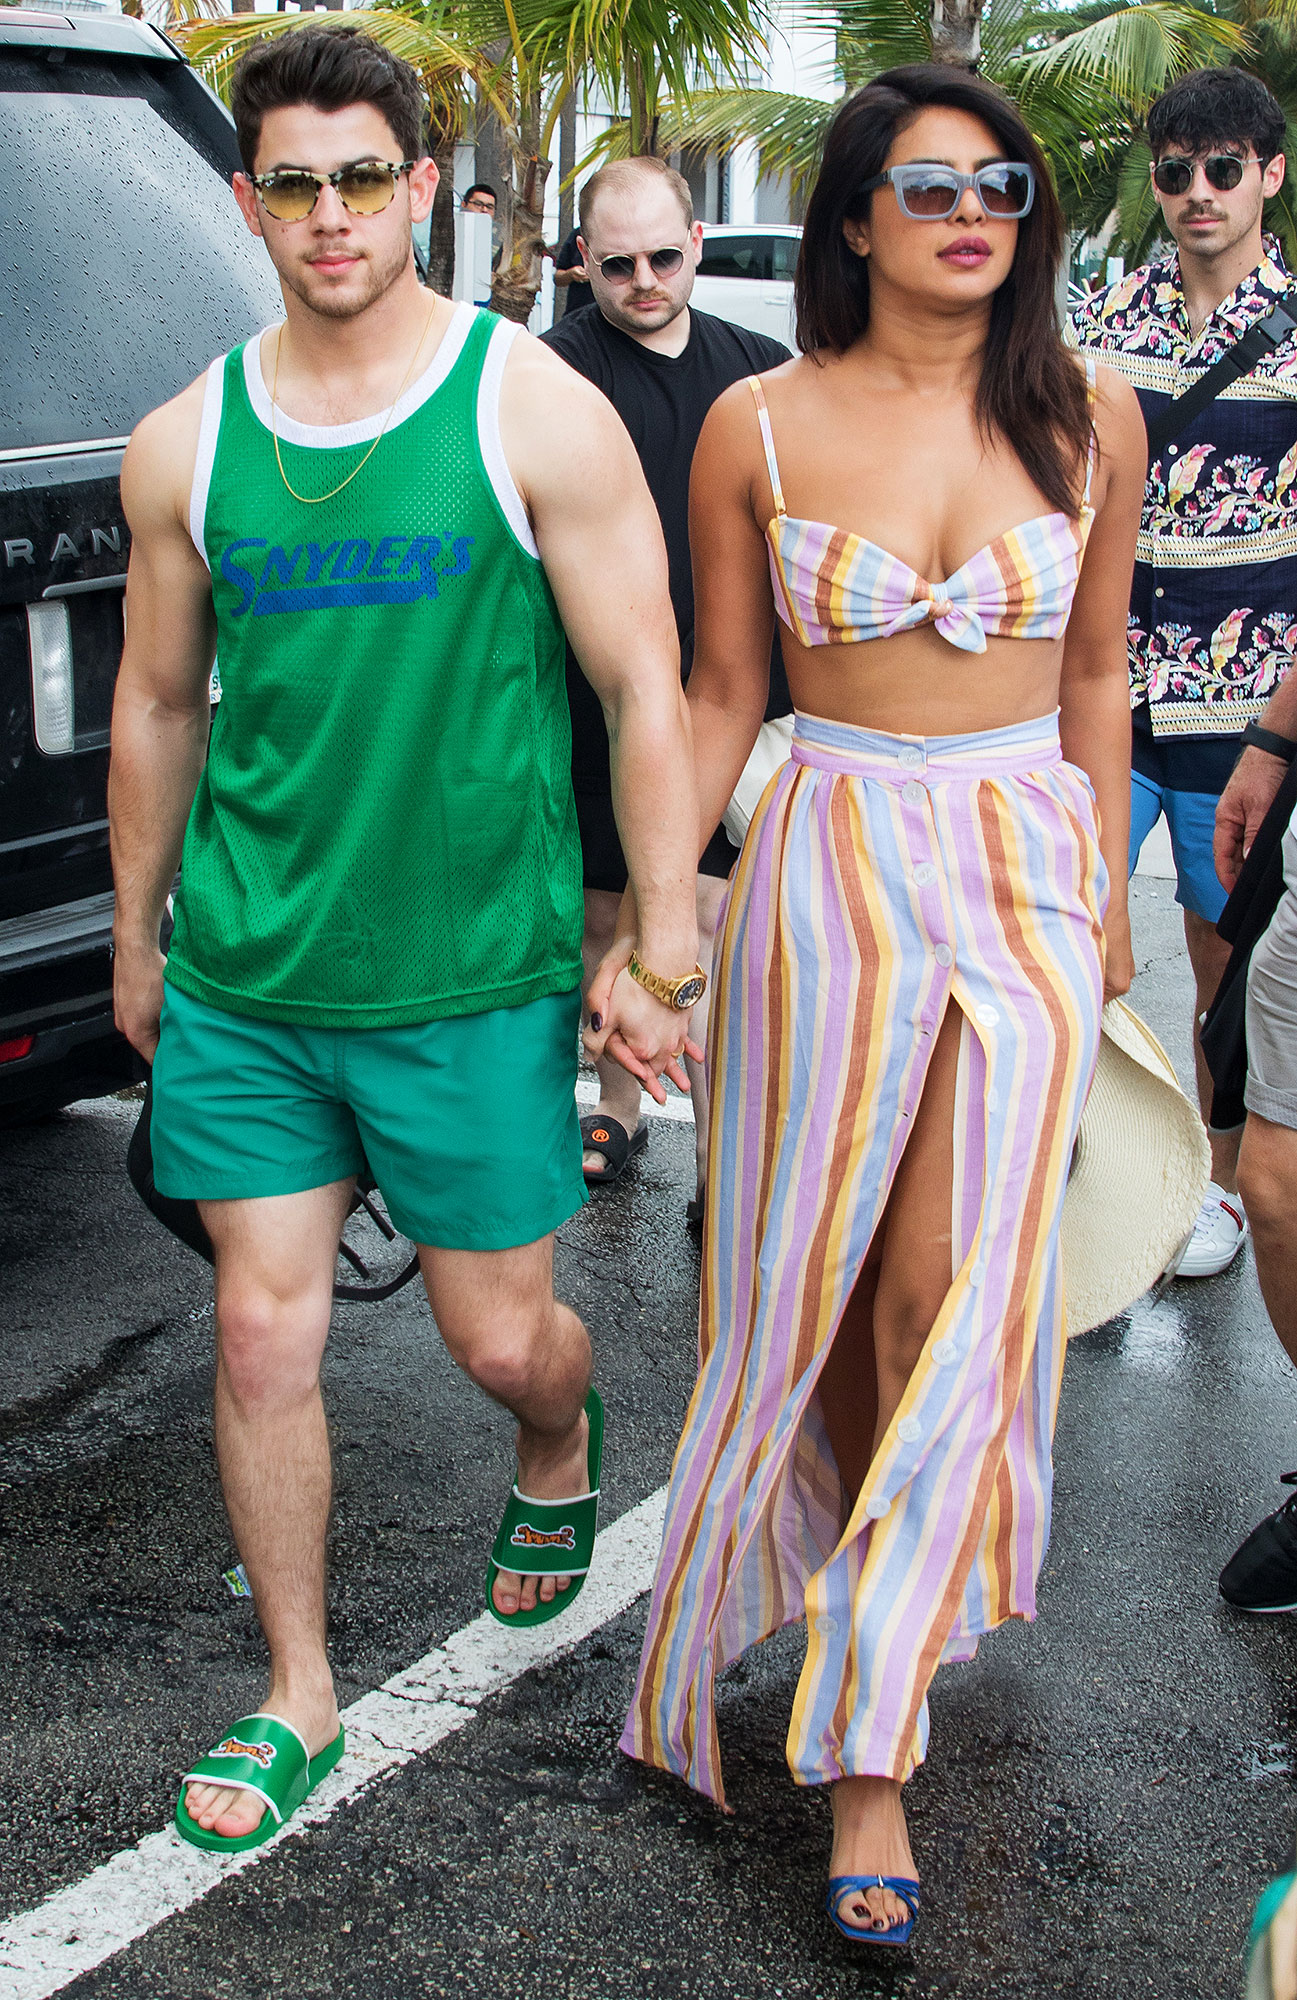 The Jonas brothers head out for a boat ride with Sophie Turner and Priyanka Chopra